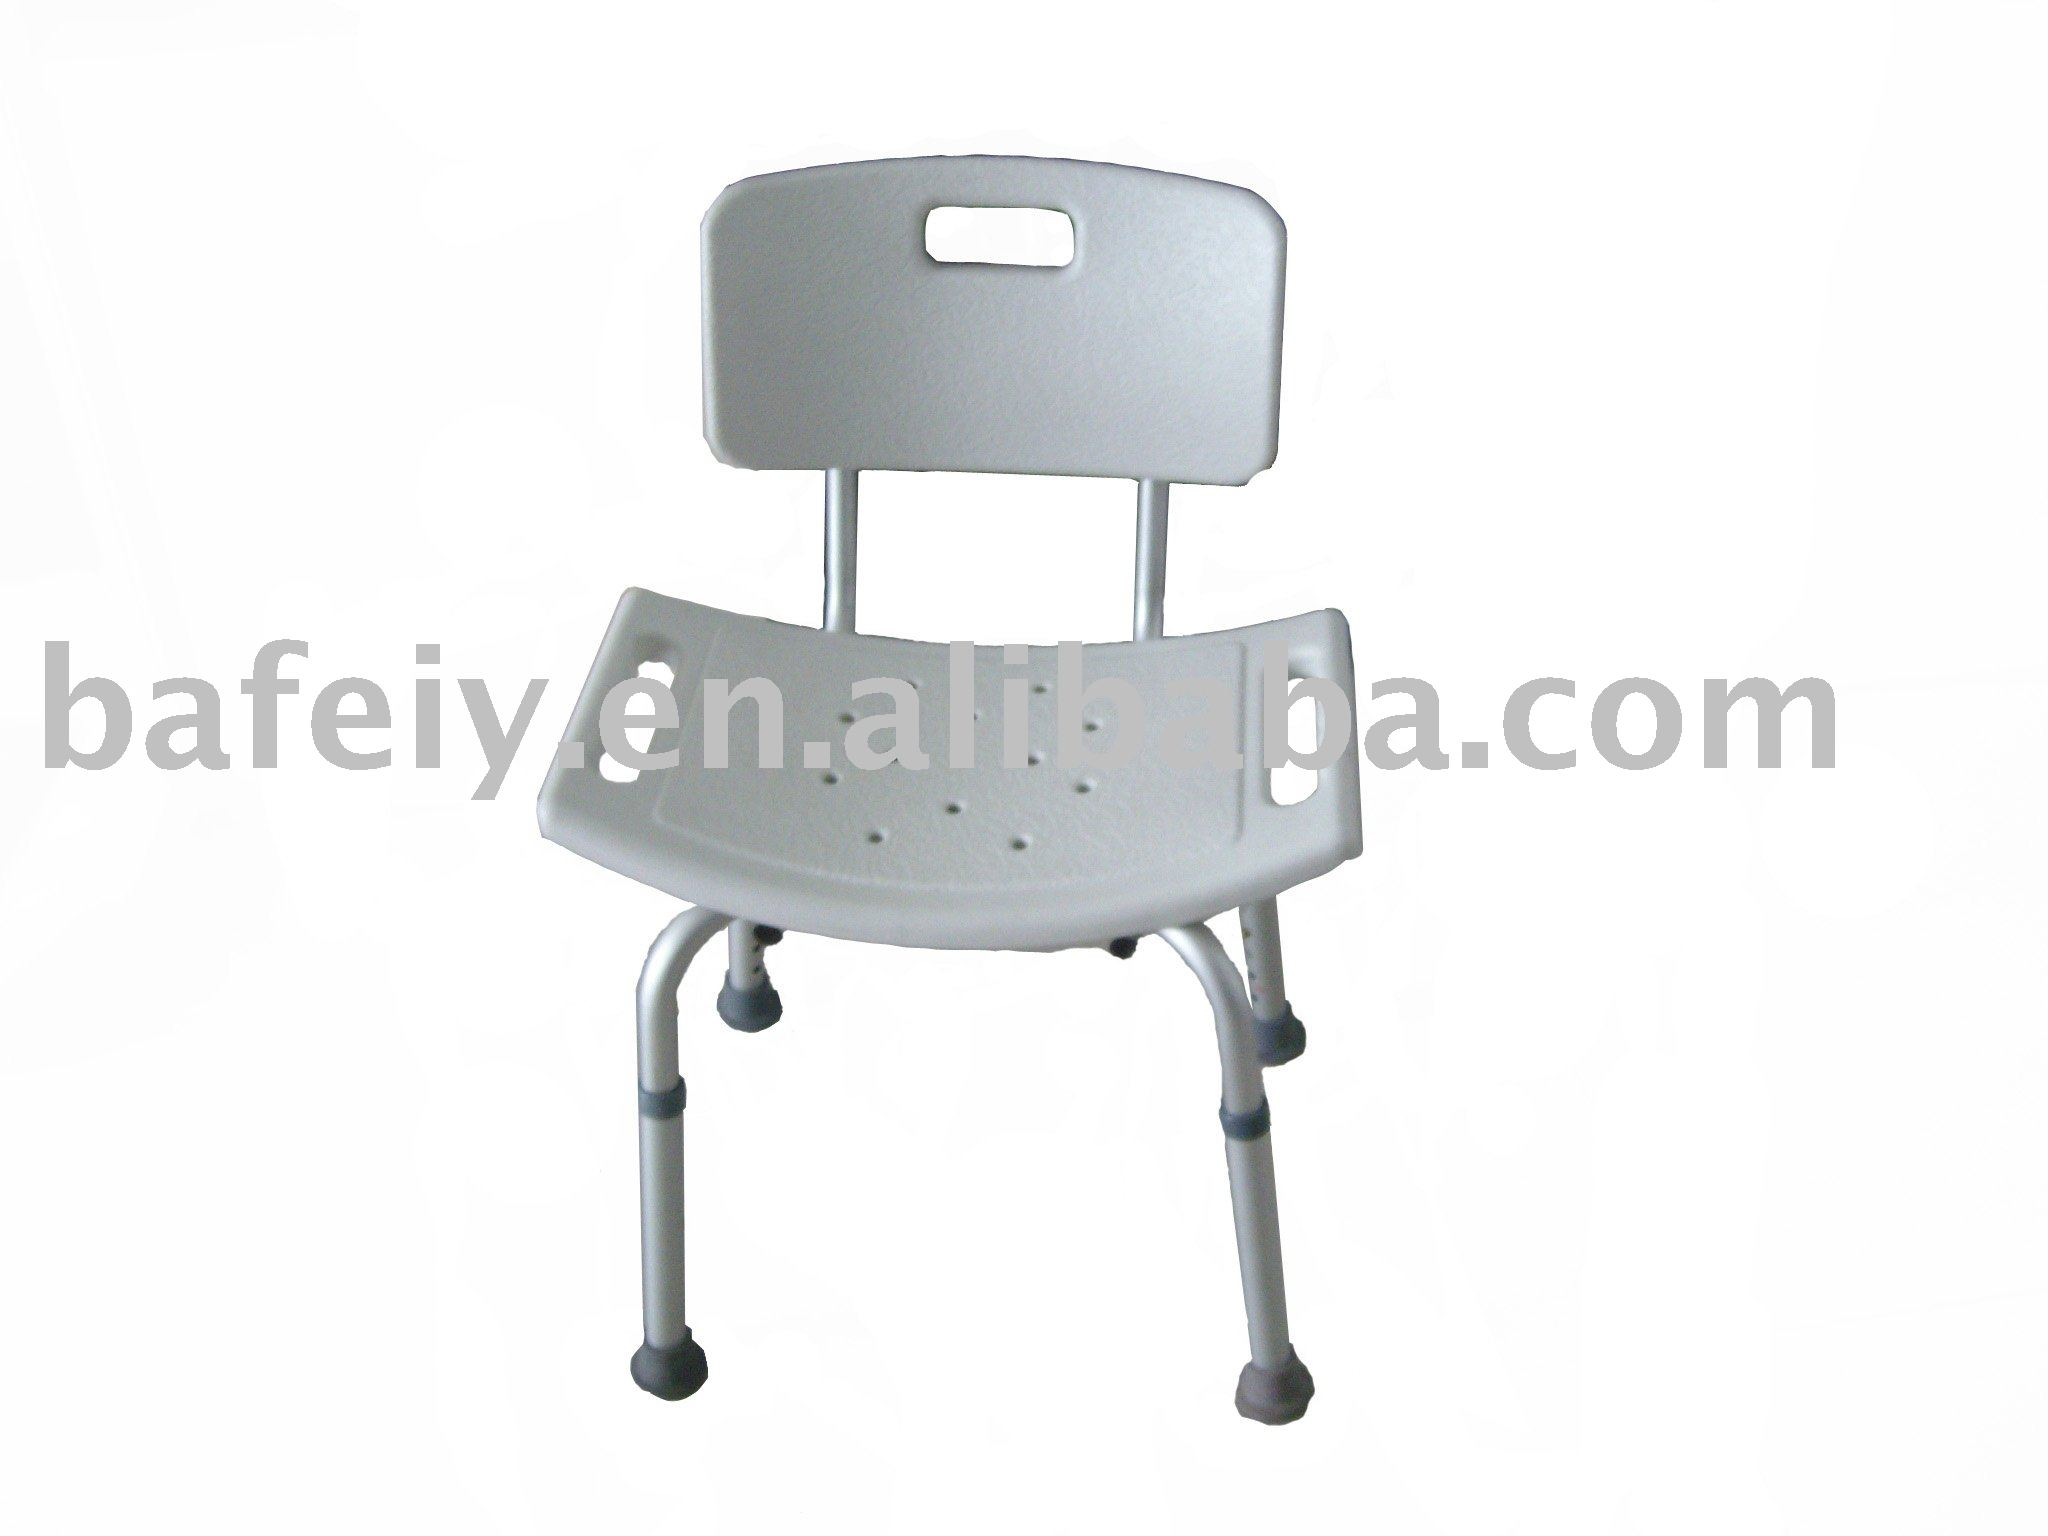 alibaba bench chair on detail shower plastic buy com product seat